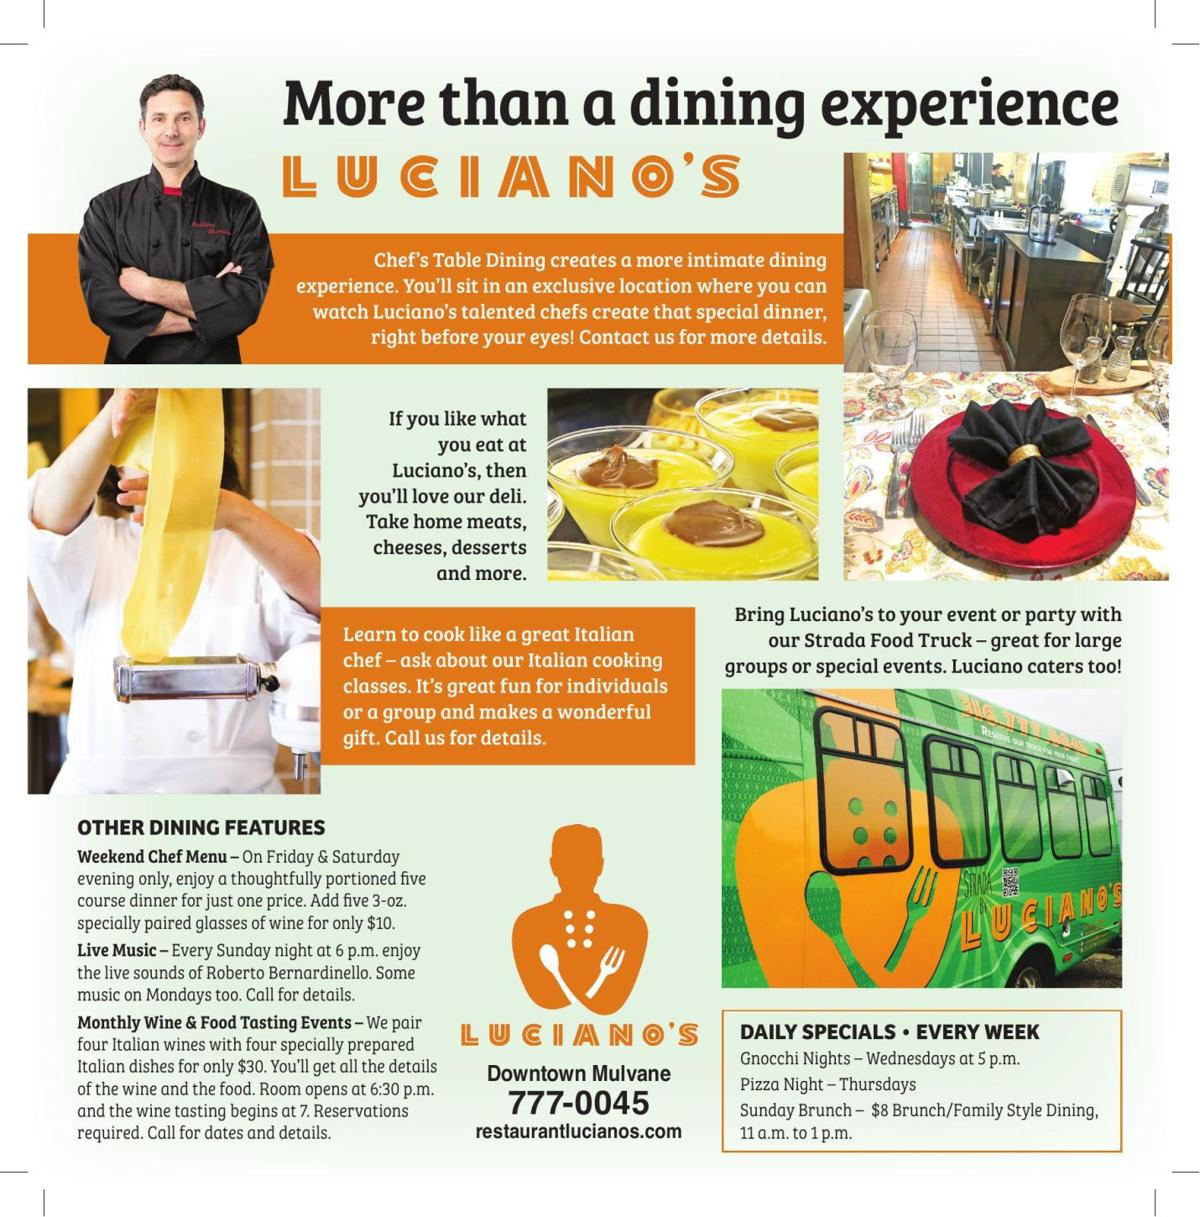 Luciano's: More than a dining experience